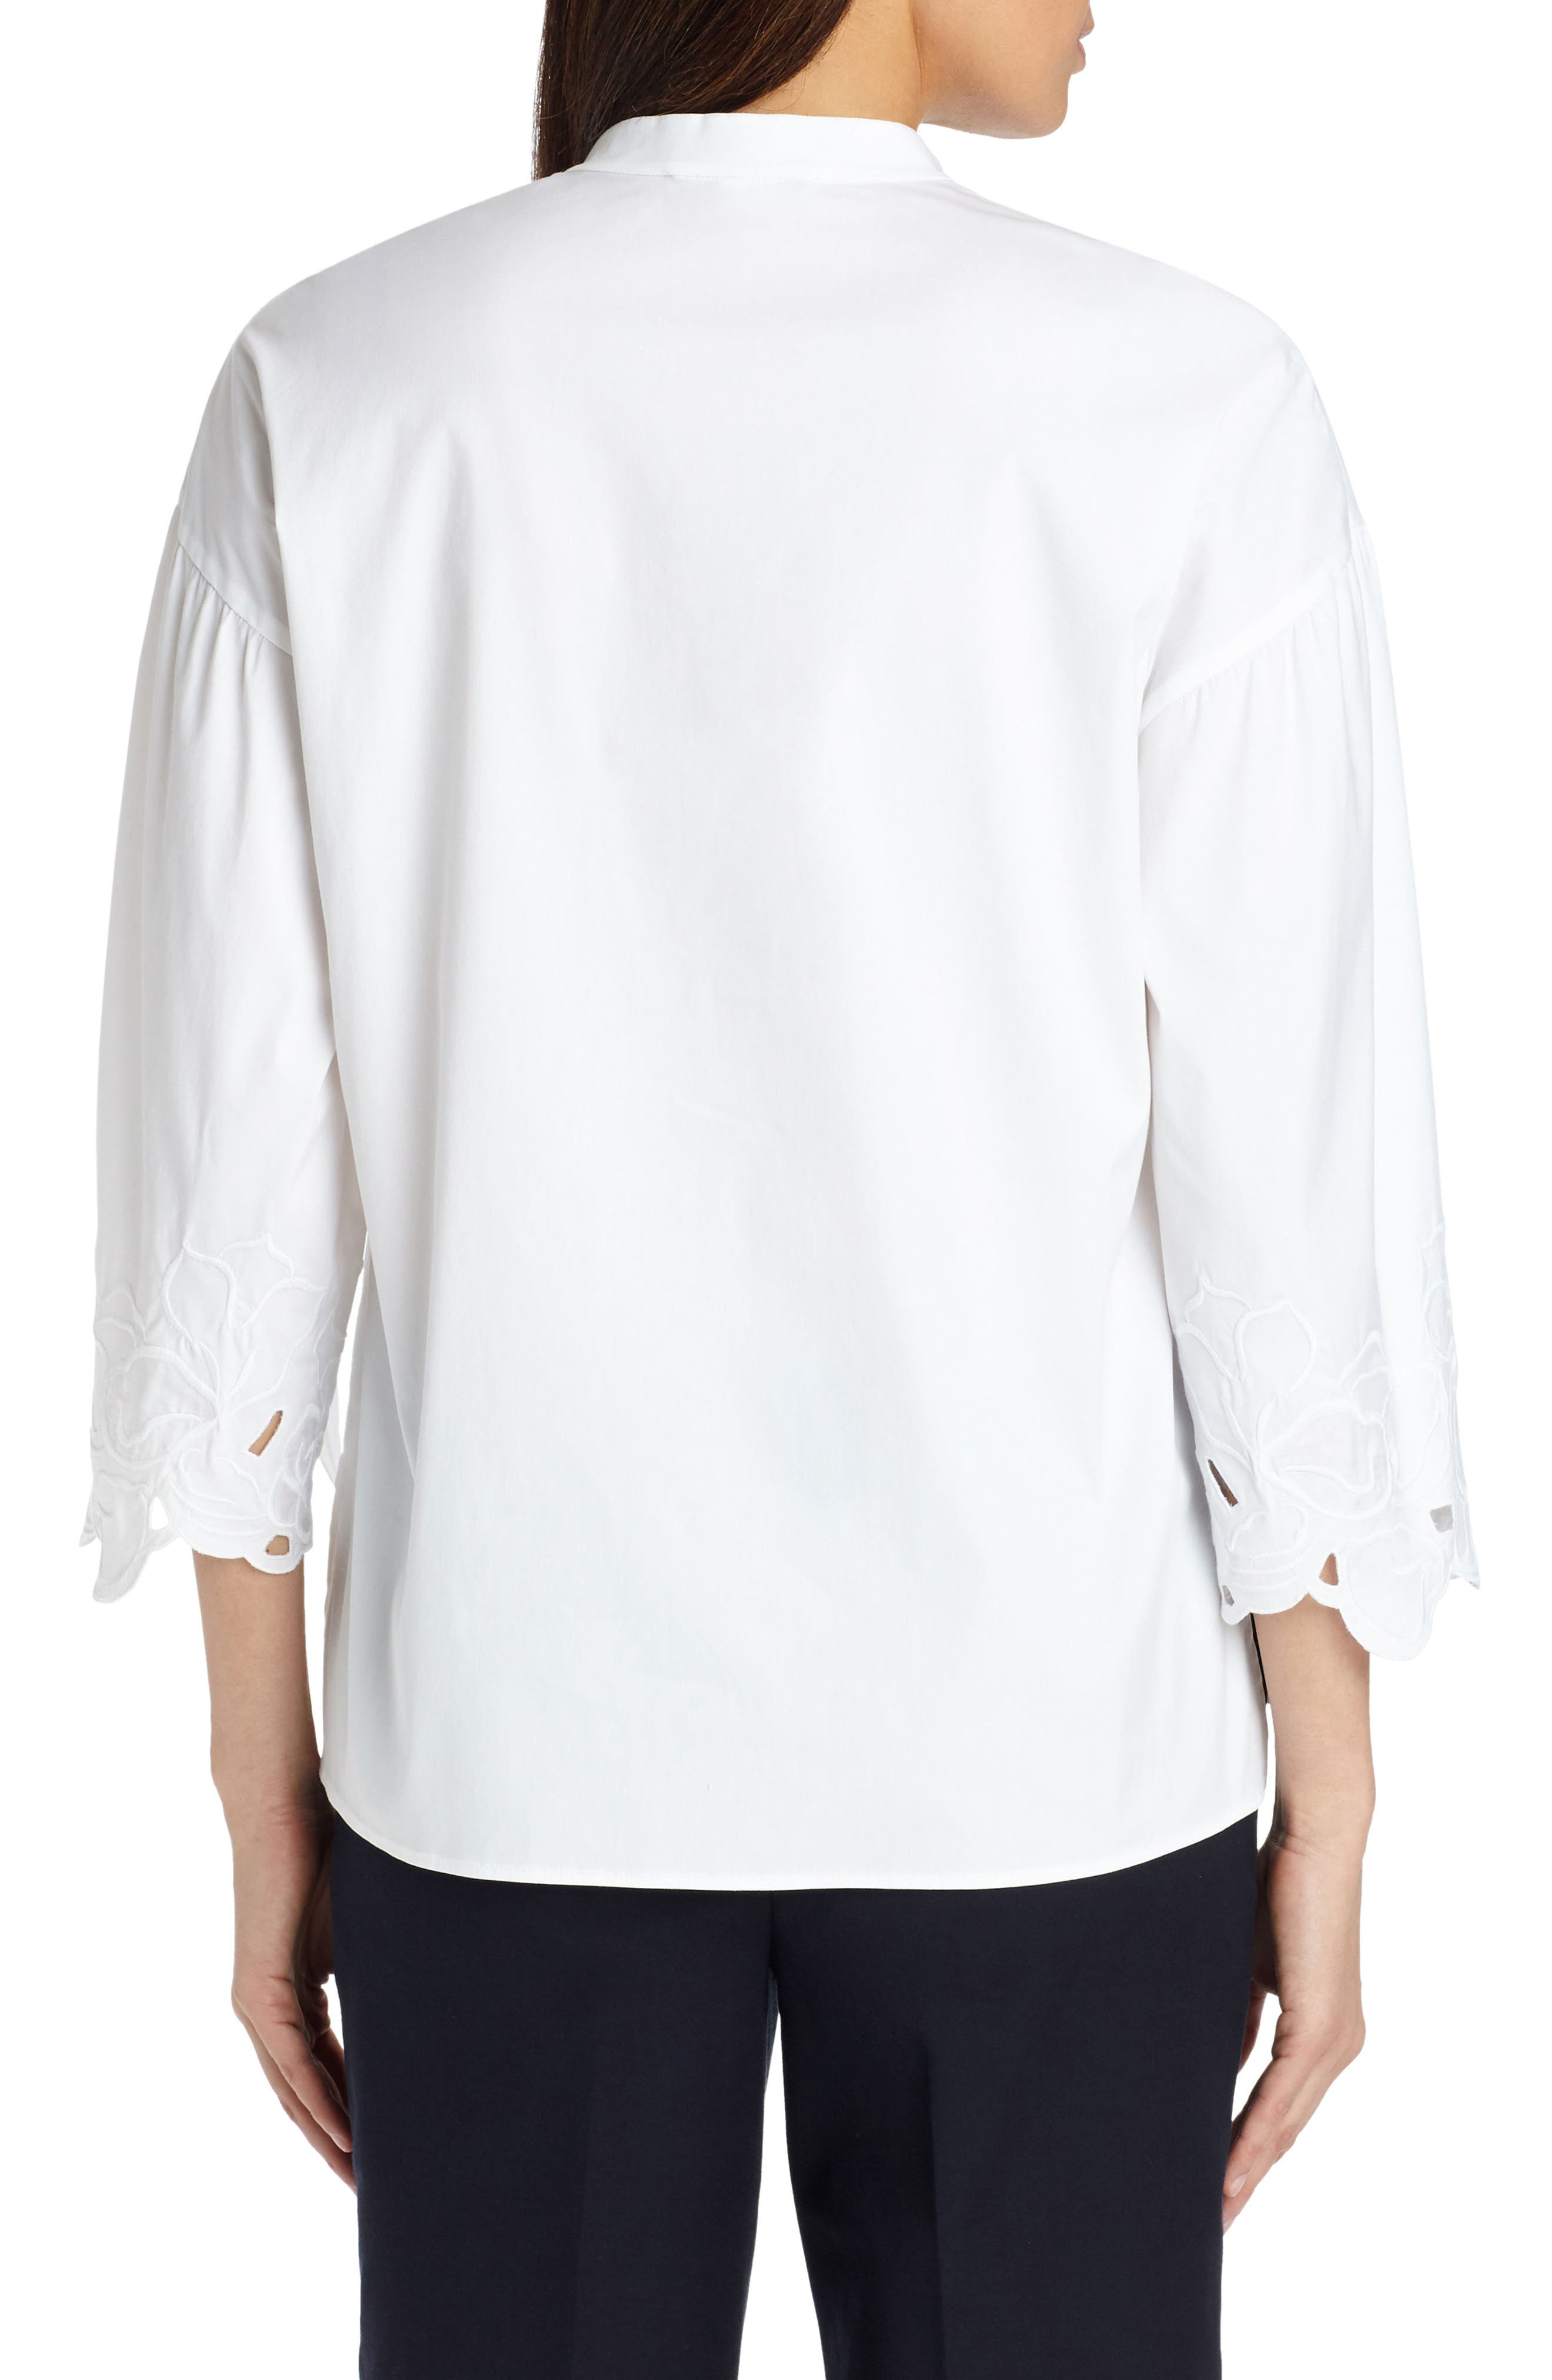 Carla Embroidered Blouse,                             Alternate thumbnail 2, color,                             White